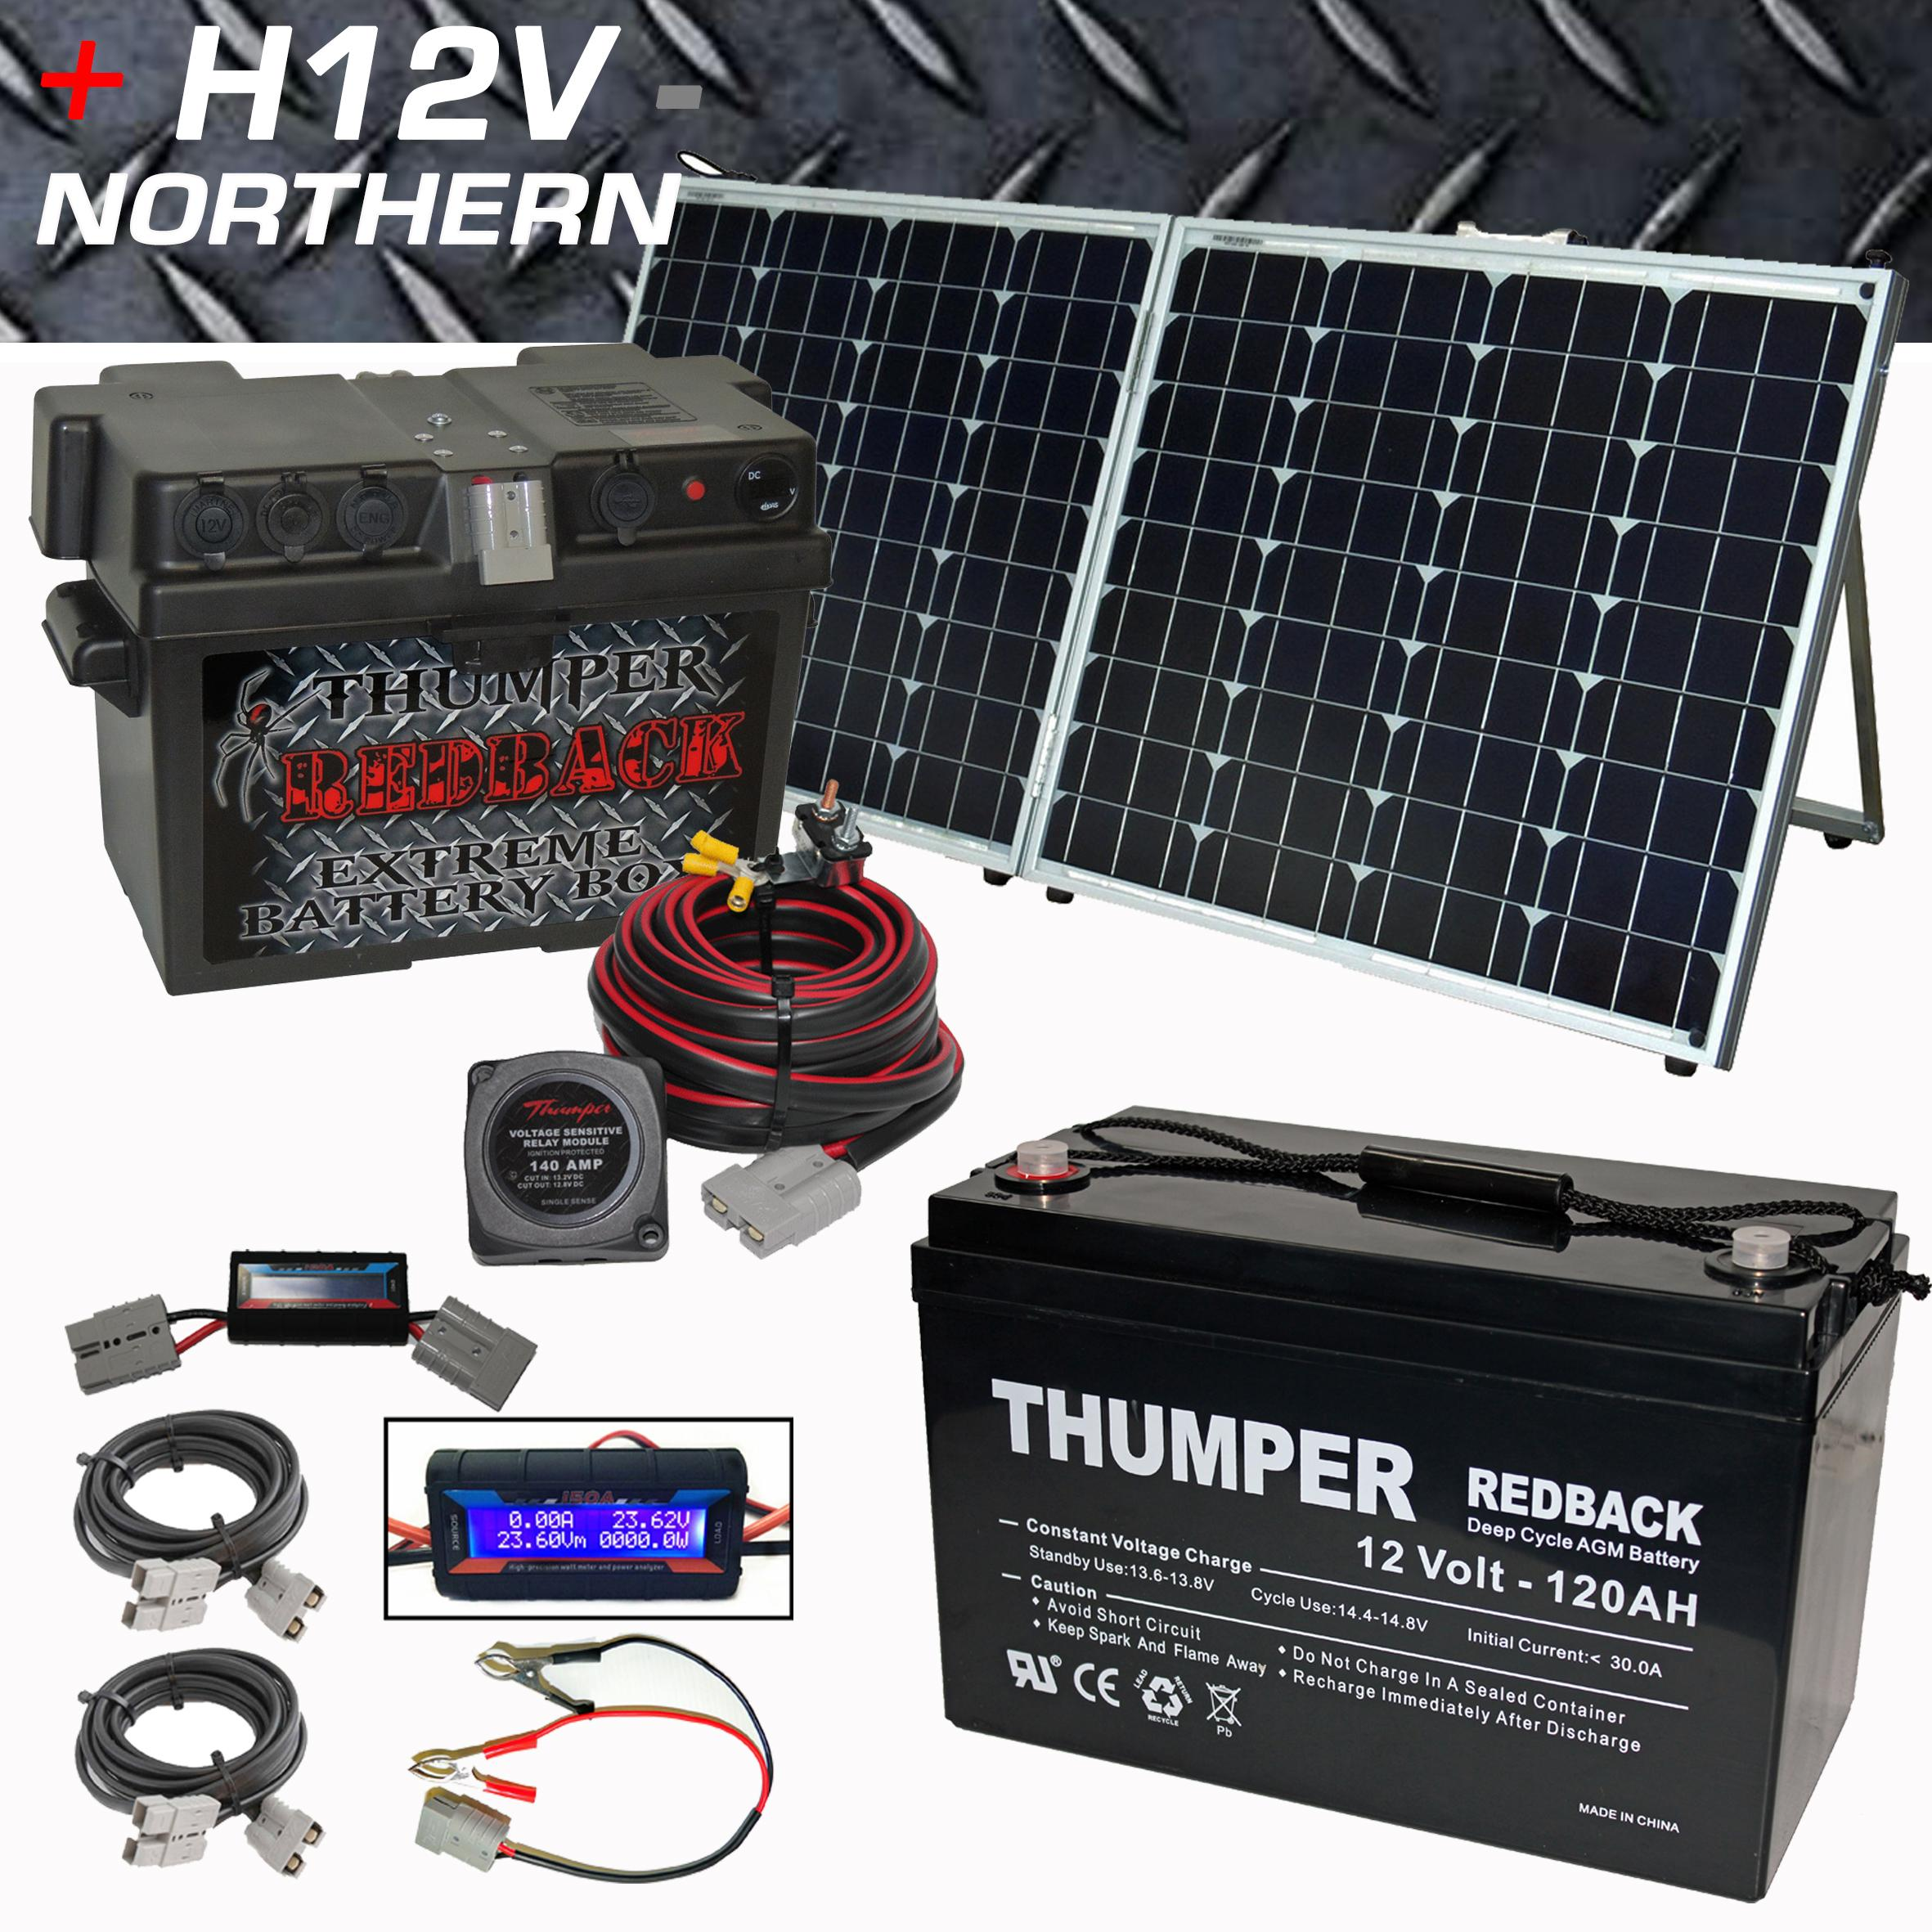 Thumper Battery Box Thumper 120ah Redback 120 Watt Split Fold Solar Panel Home Of 12 Volt Northern